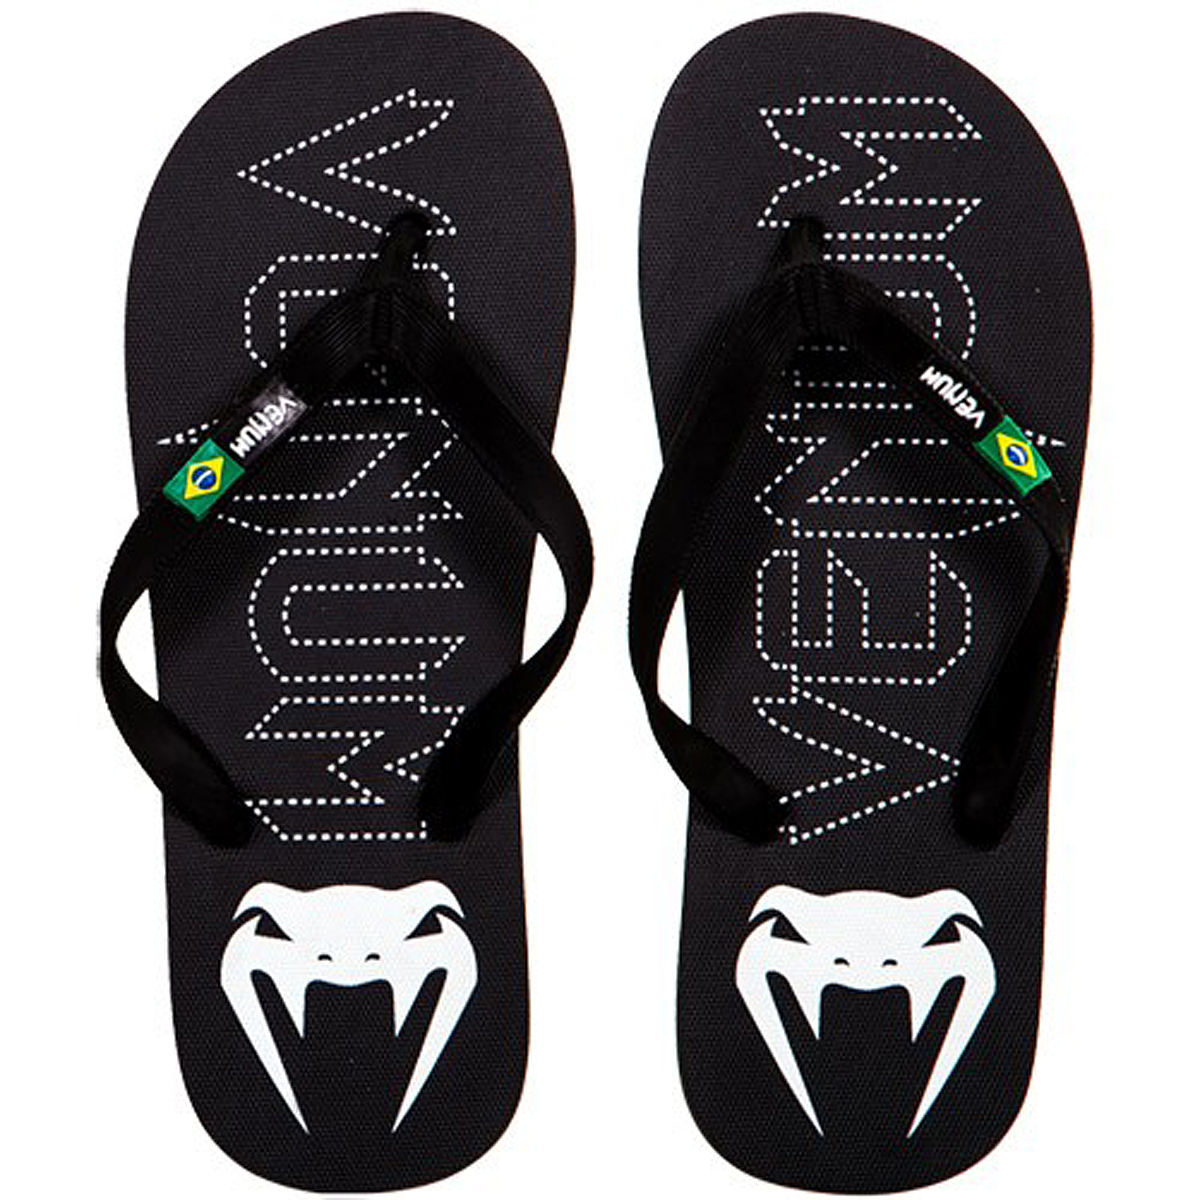 Venum Men's Original Sandals - Black